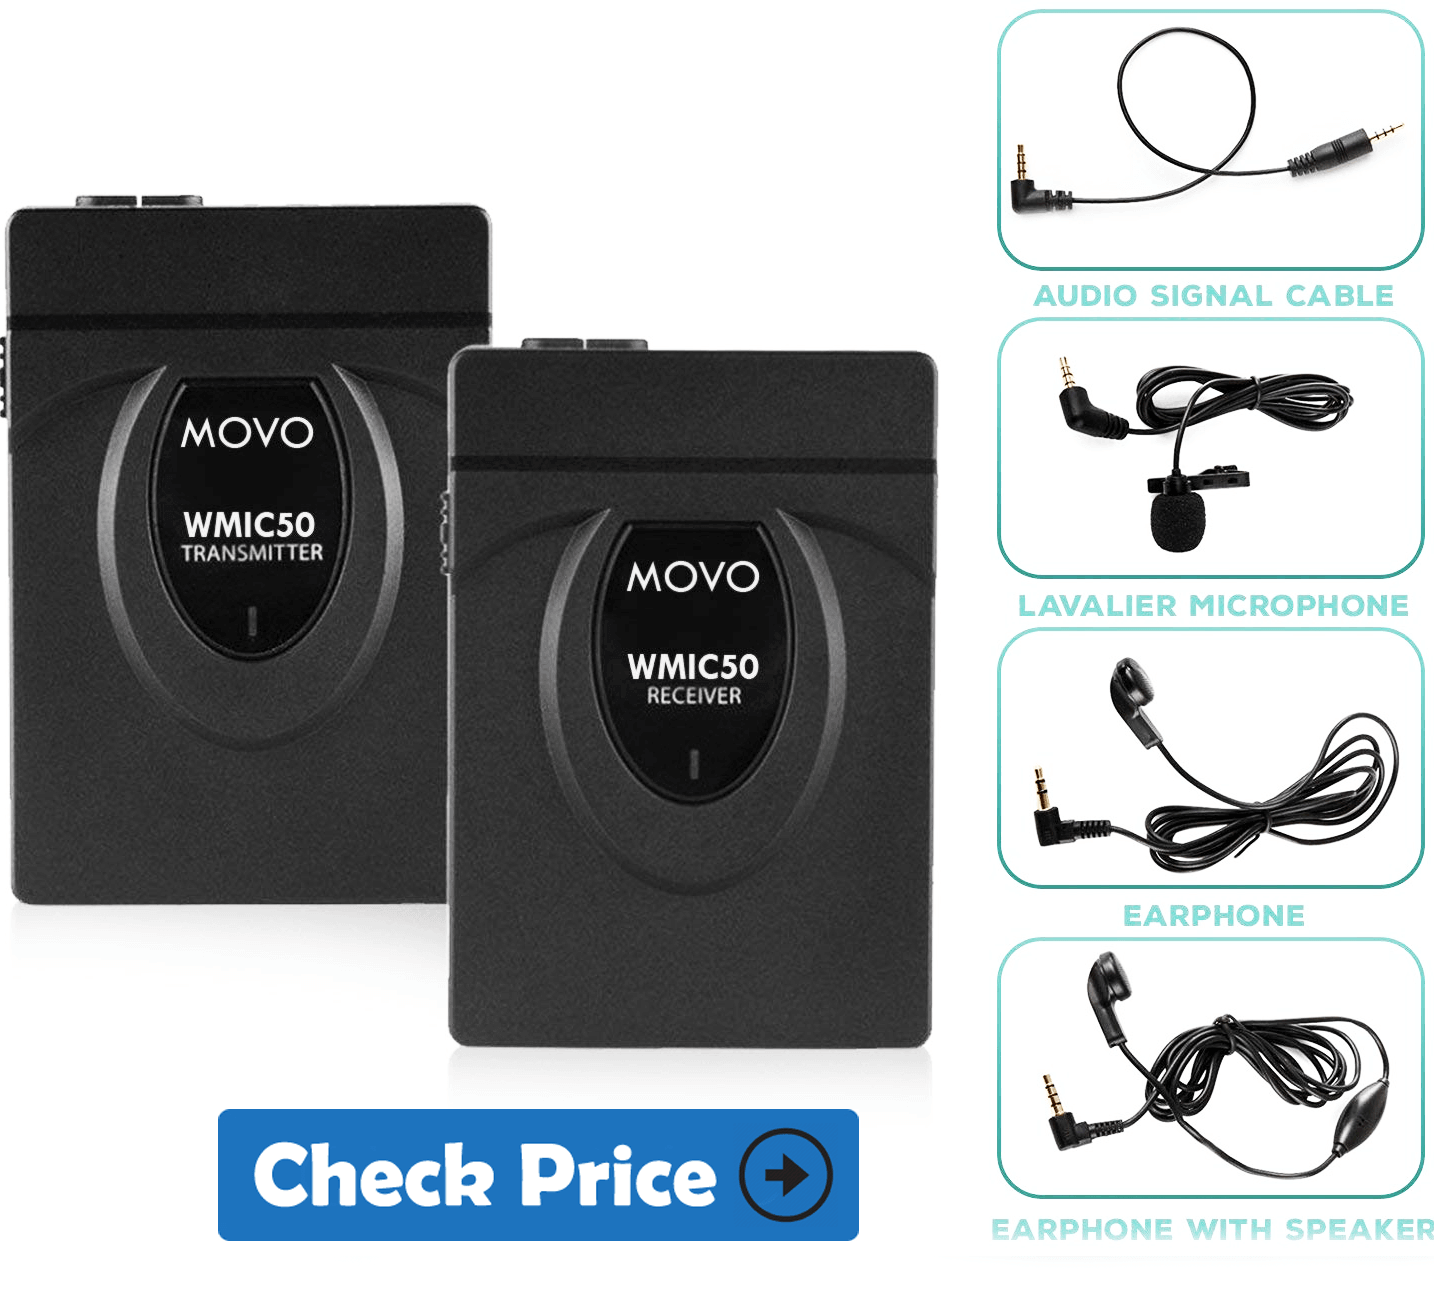 Movo WMIC50 review